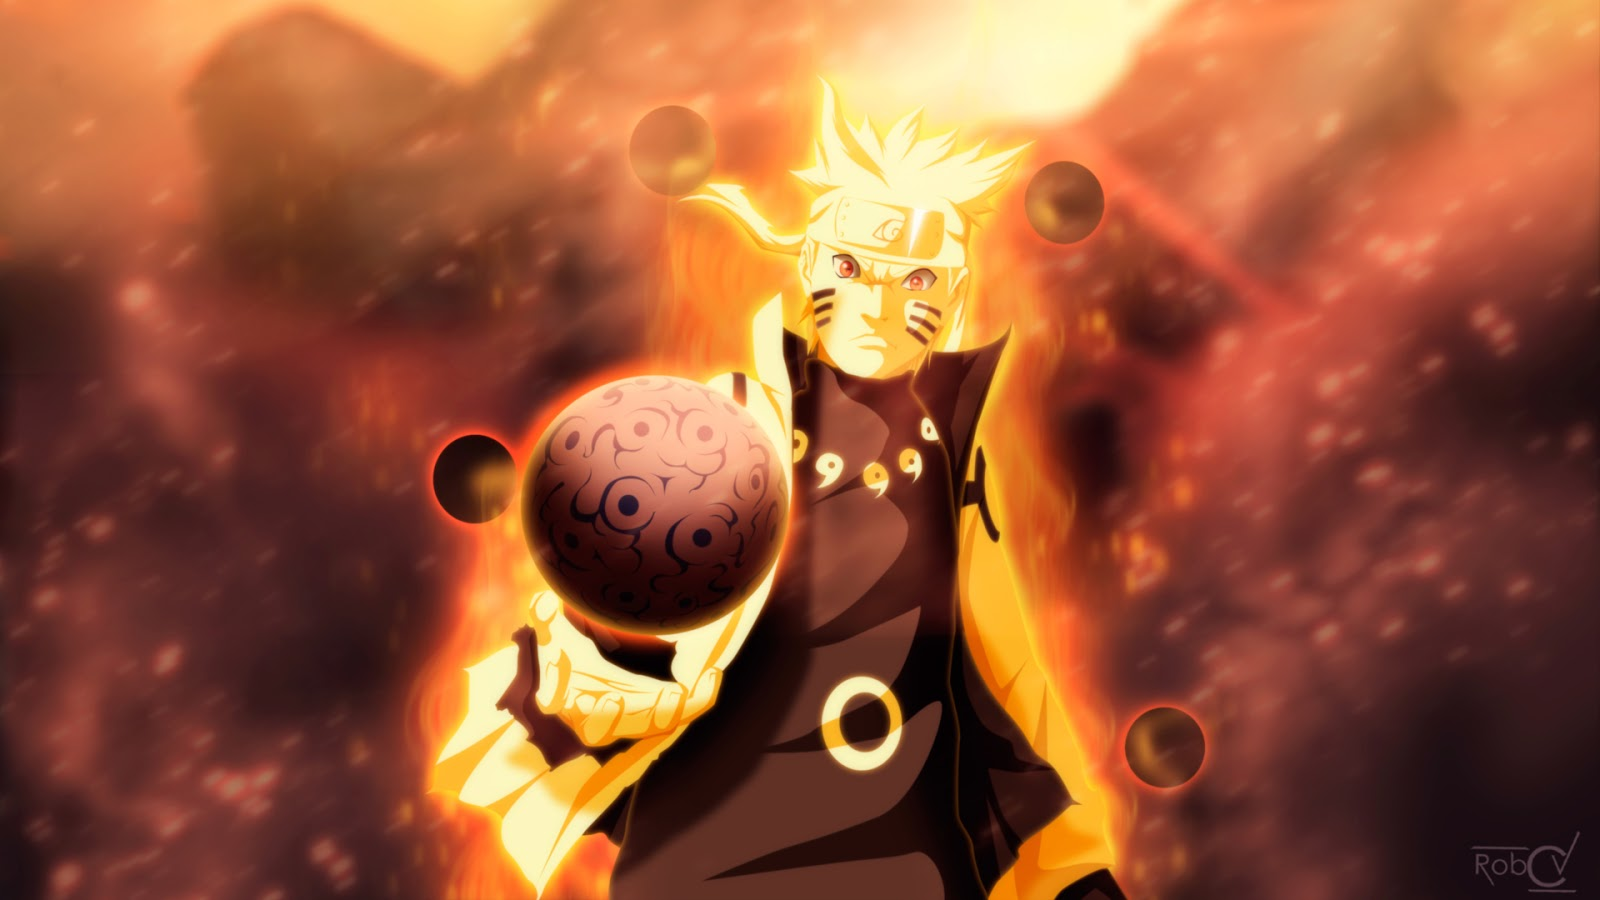 Naruto HD Wallpapers For Desktop ~ Latest Anime Wallpapers